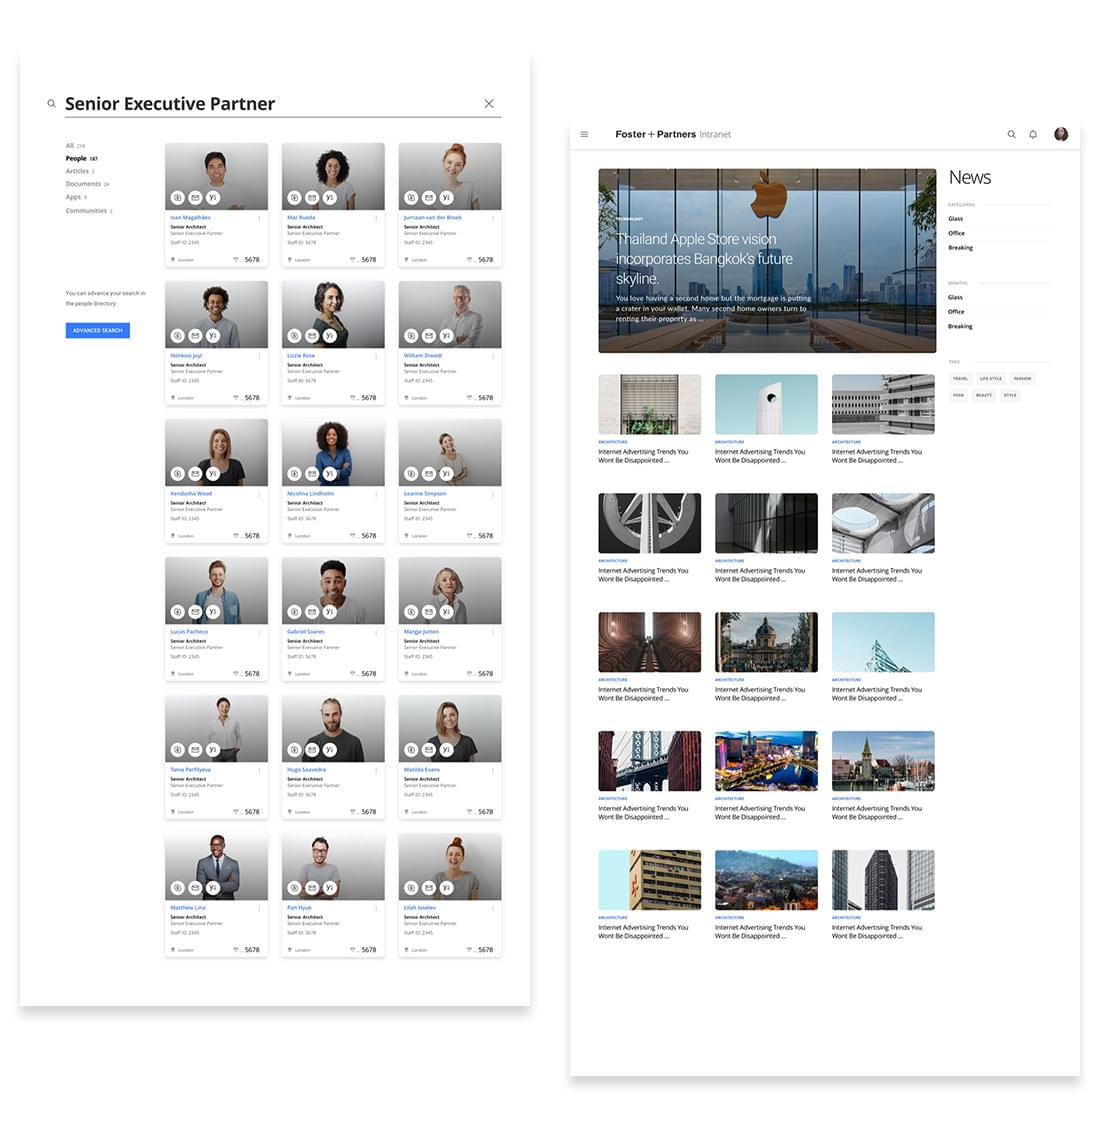 A web design mockup of Foster and Partners live search function on mobile and news page on the company intranet built on Umbraco by Cogworks Umbraco Gold Partner Agency London